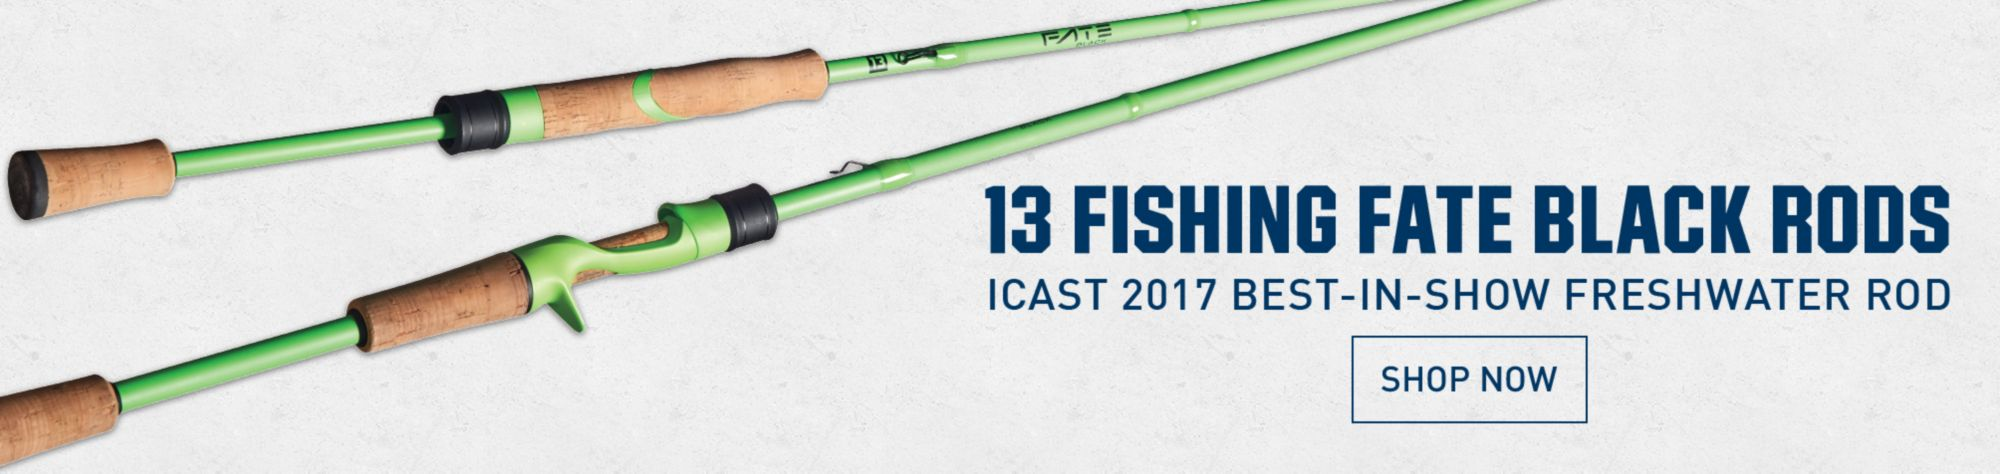 Fishing poles rods best price guarantee at dick 39 s for Dicks sporting goods fishing